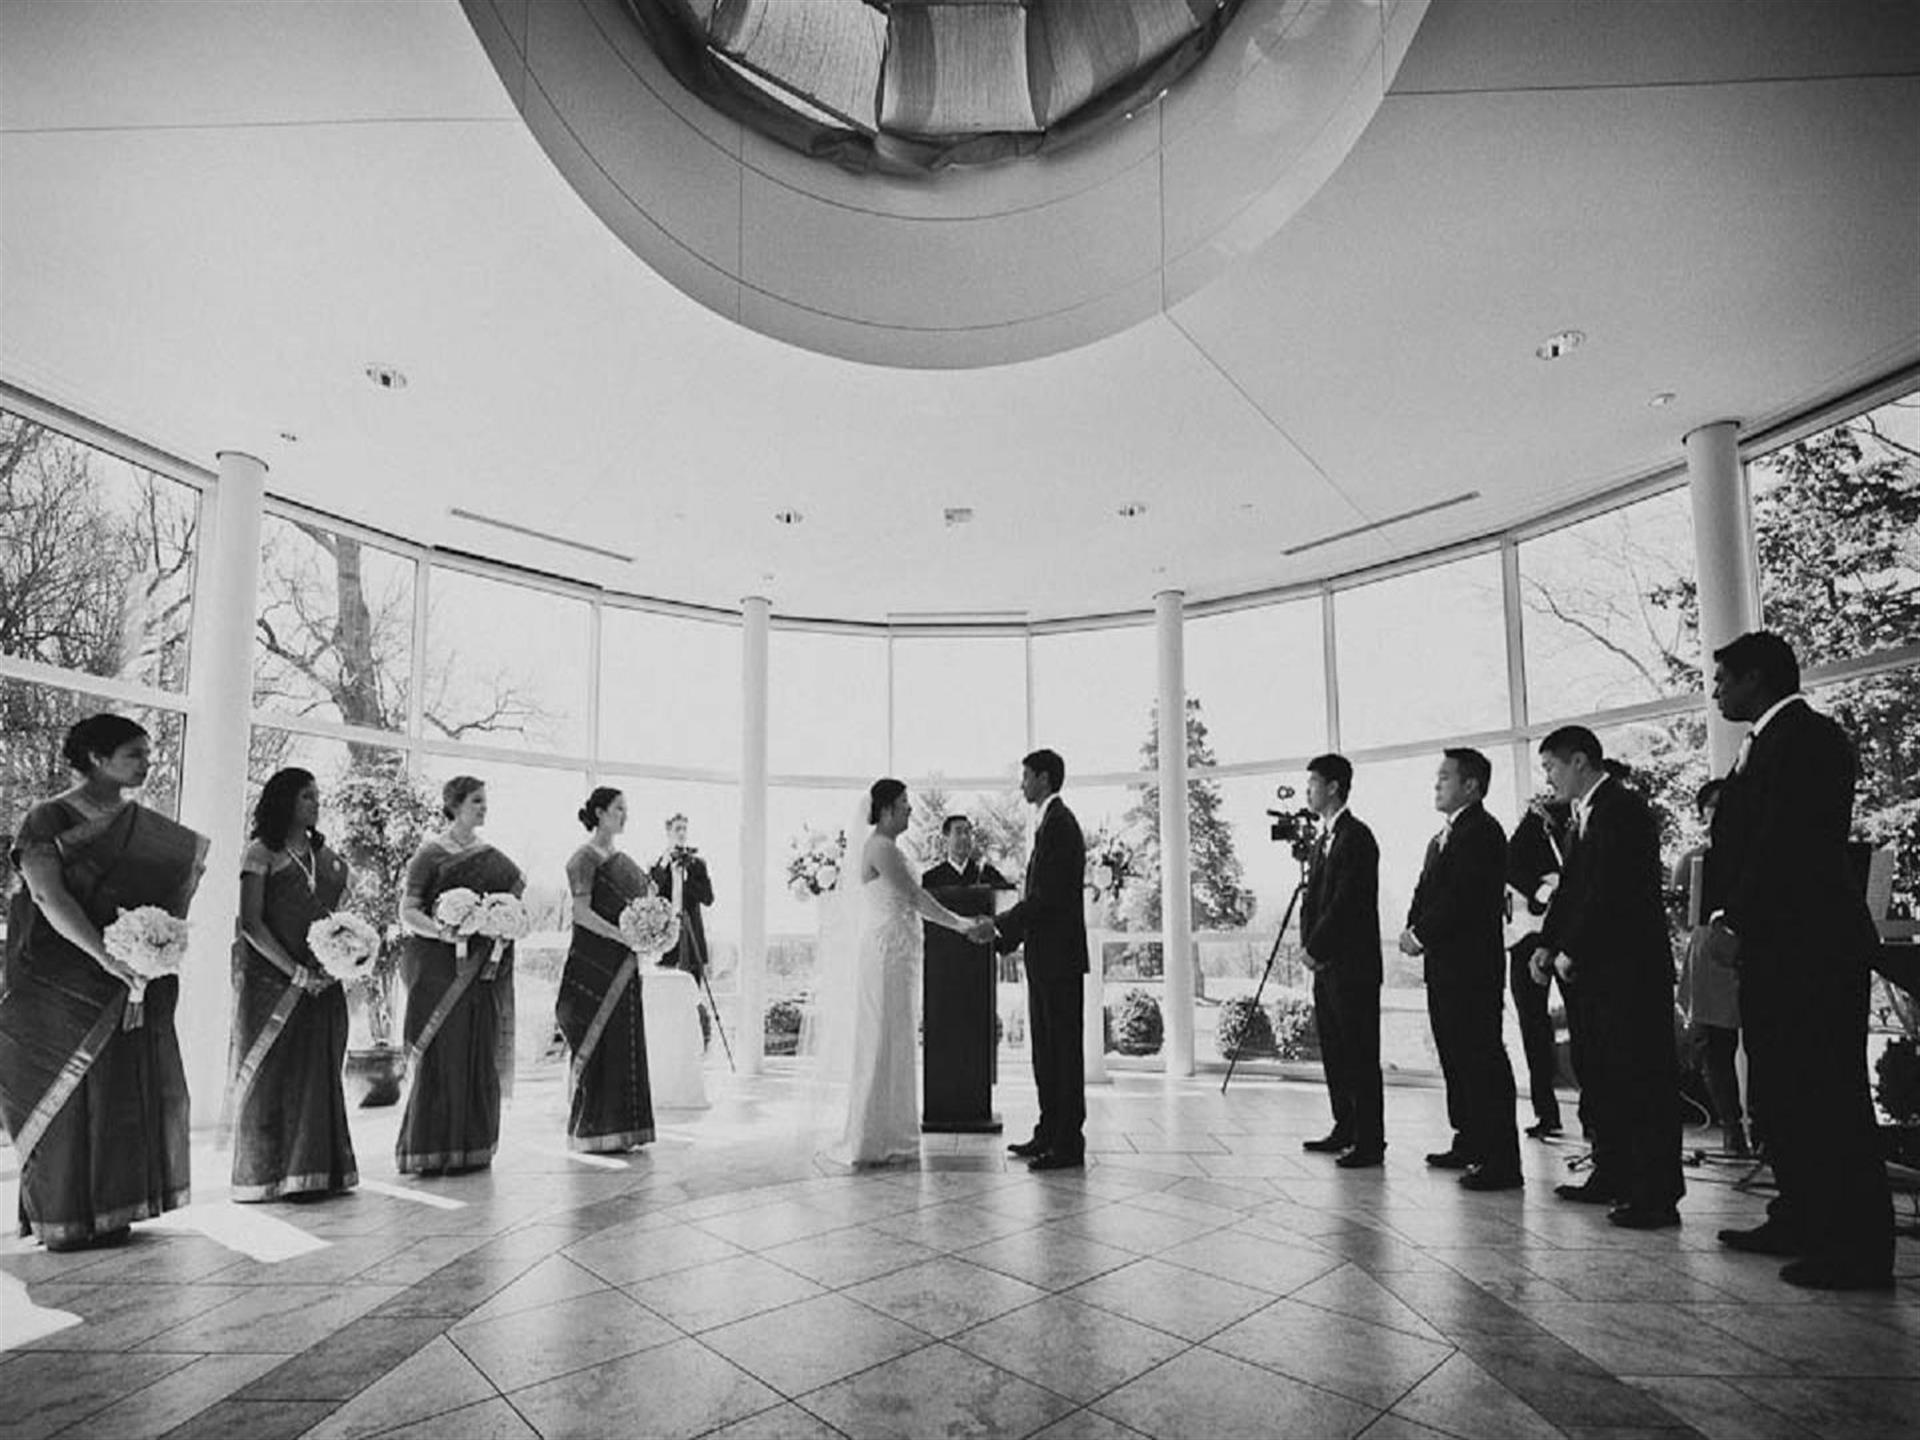 Bride and groom surrounded by bridesmaids and groomsmen